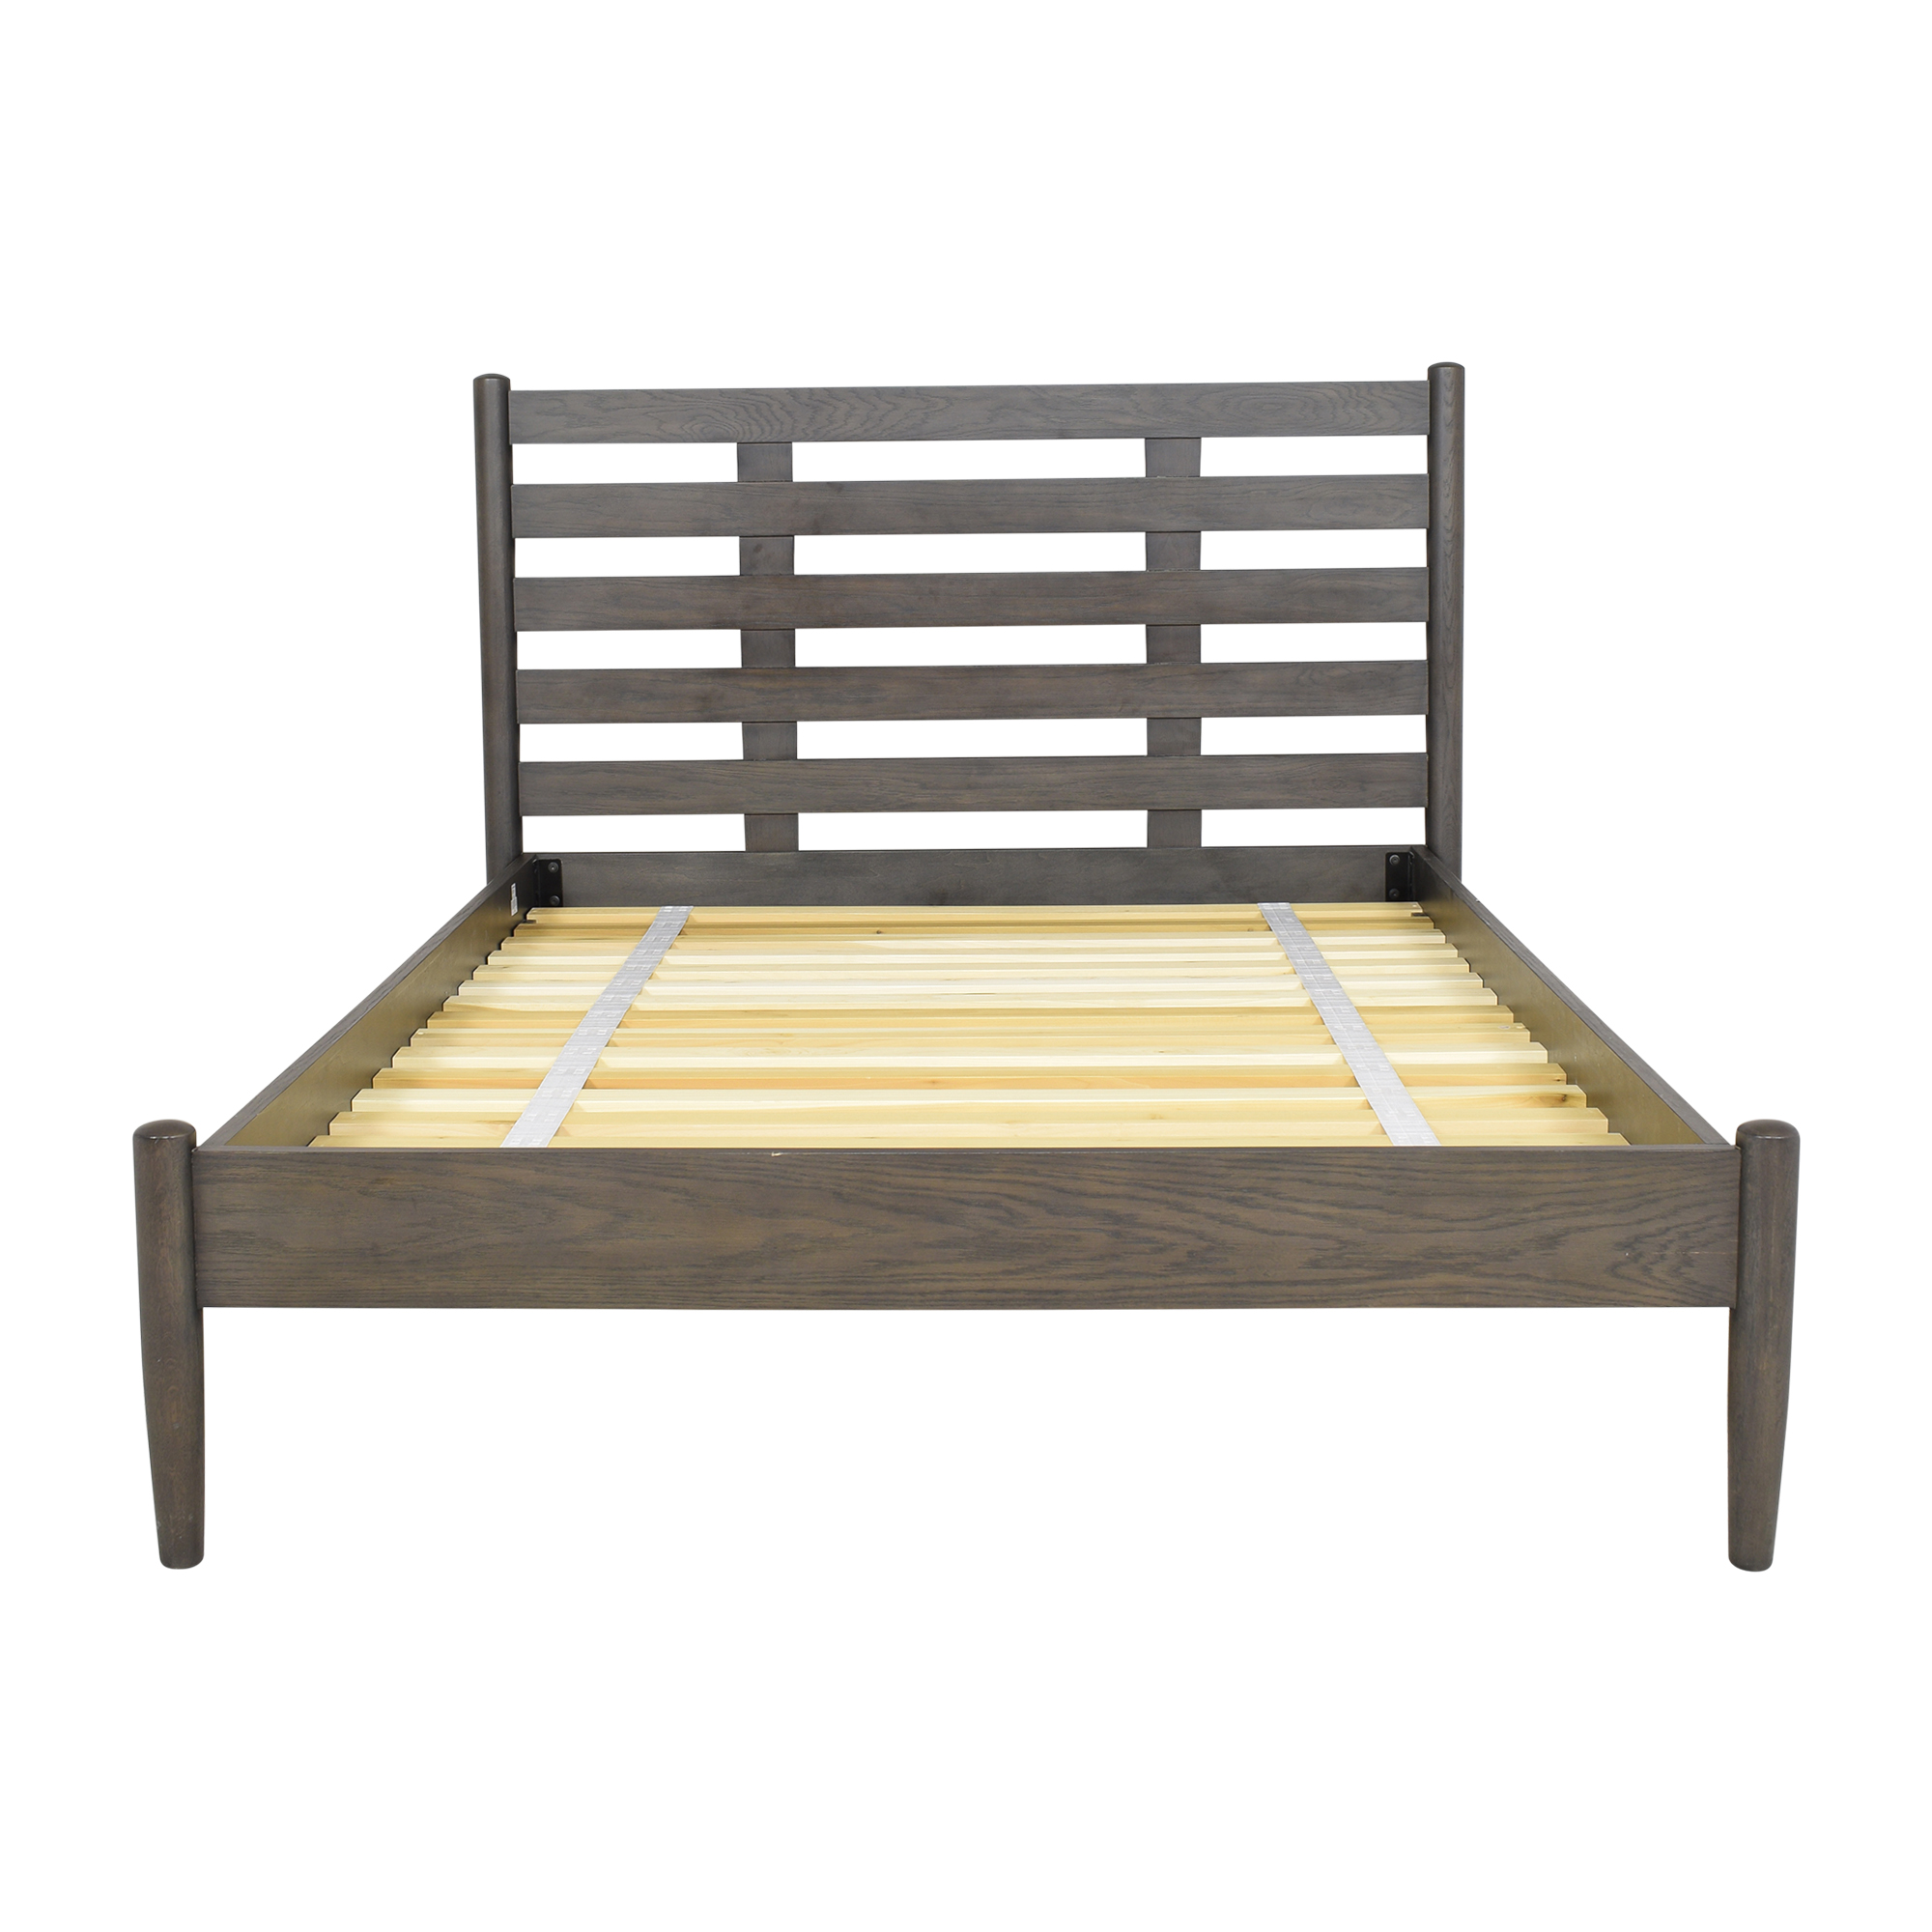 Crate & Barrel Crate & Barrel Barnes Full Bed on sale